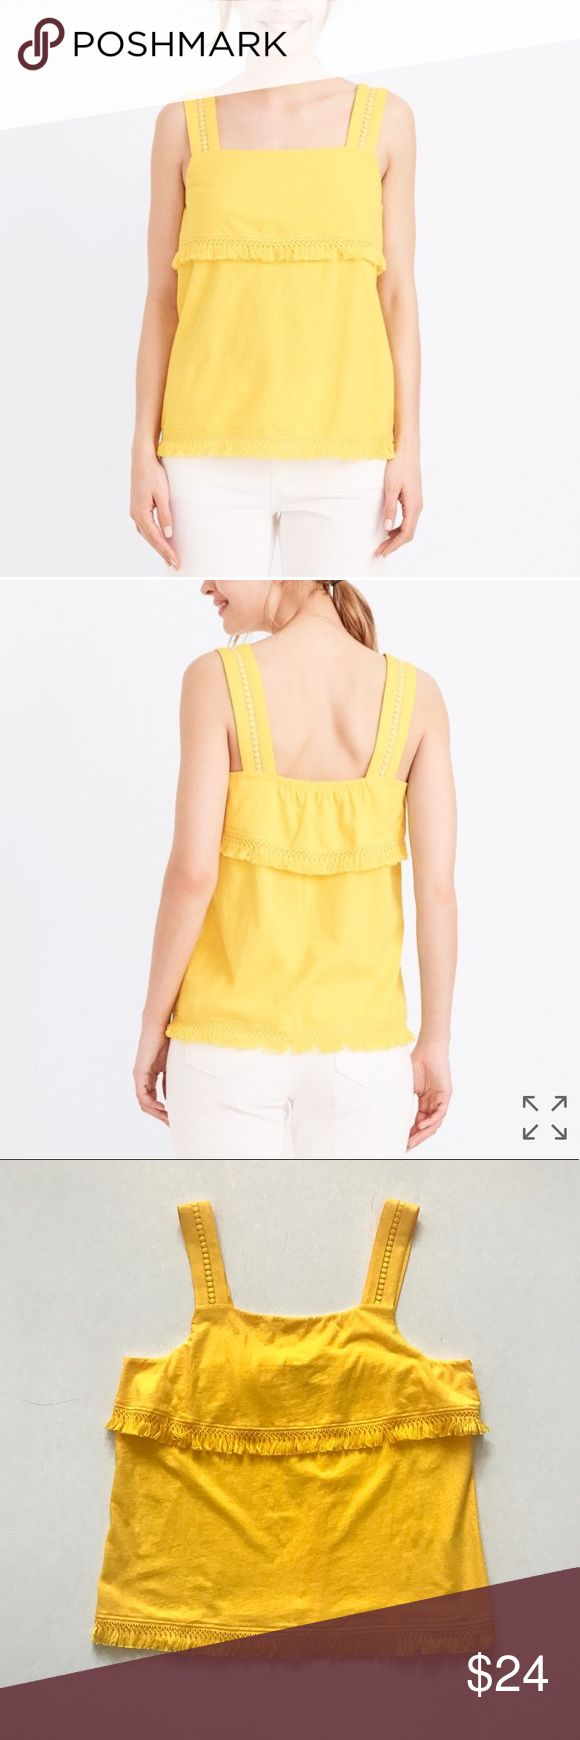 "NWT J. Crew Yellow Fringe Tank Top NWT J. Crew Yellow Fringe Tank Top J. Crew cotton tank with fringe detail. Loose fit. Color is ""warm sun."" Size XL. Approx measurements lying flat: 20.5"" bust, 26.5"" length. New with tags. No trades. Reasonable offers welcome J. Crew Tops Tank Tops"